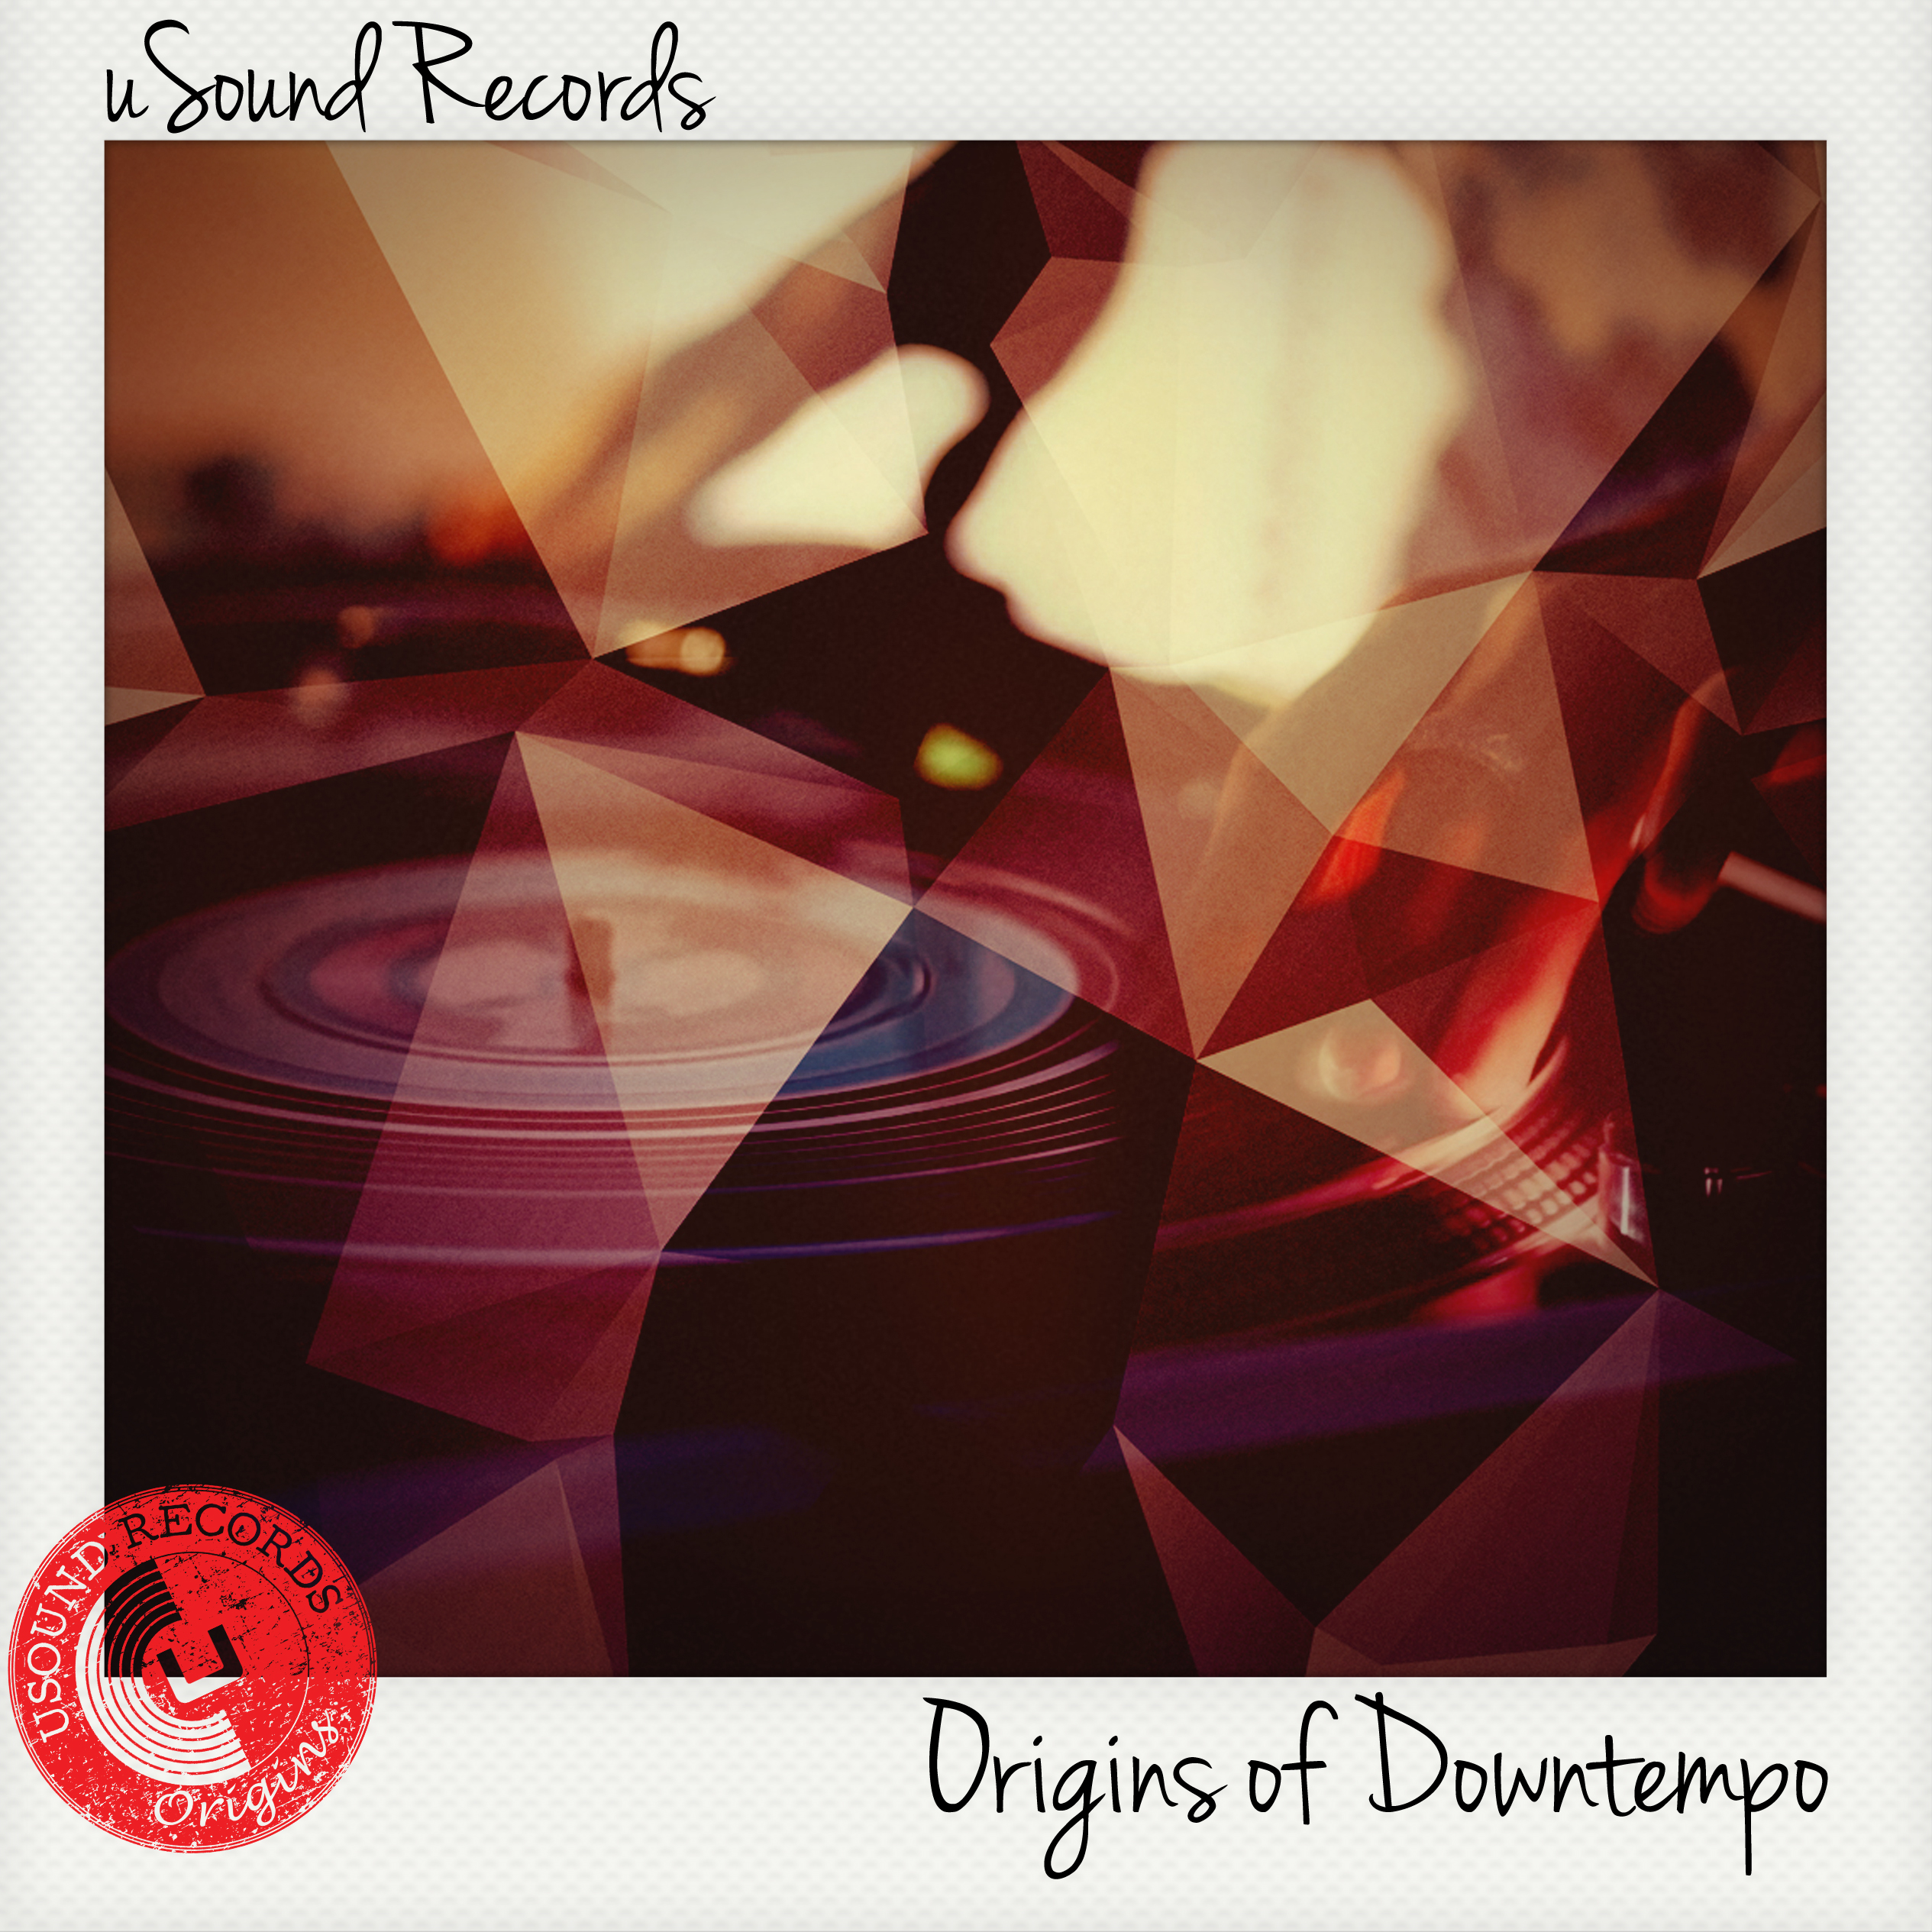 uSound Records: Origins – Origins of Downtempo